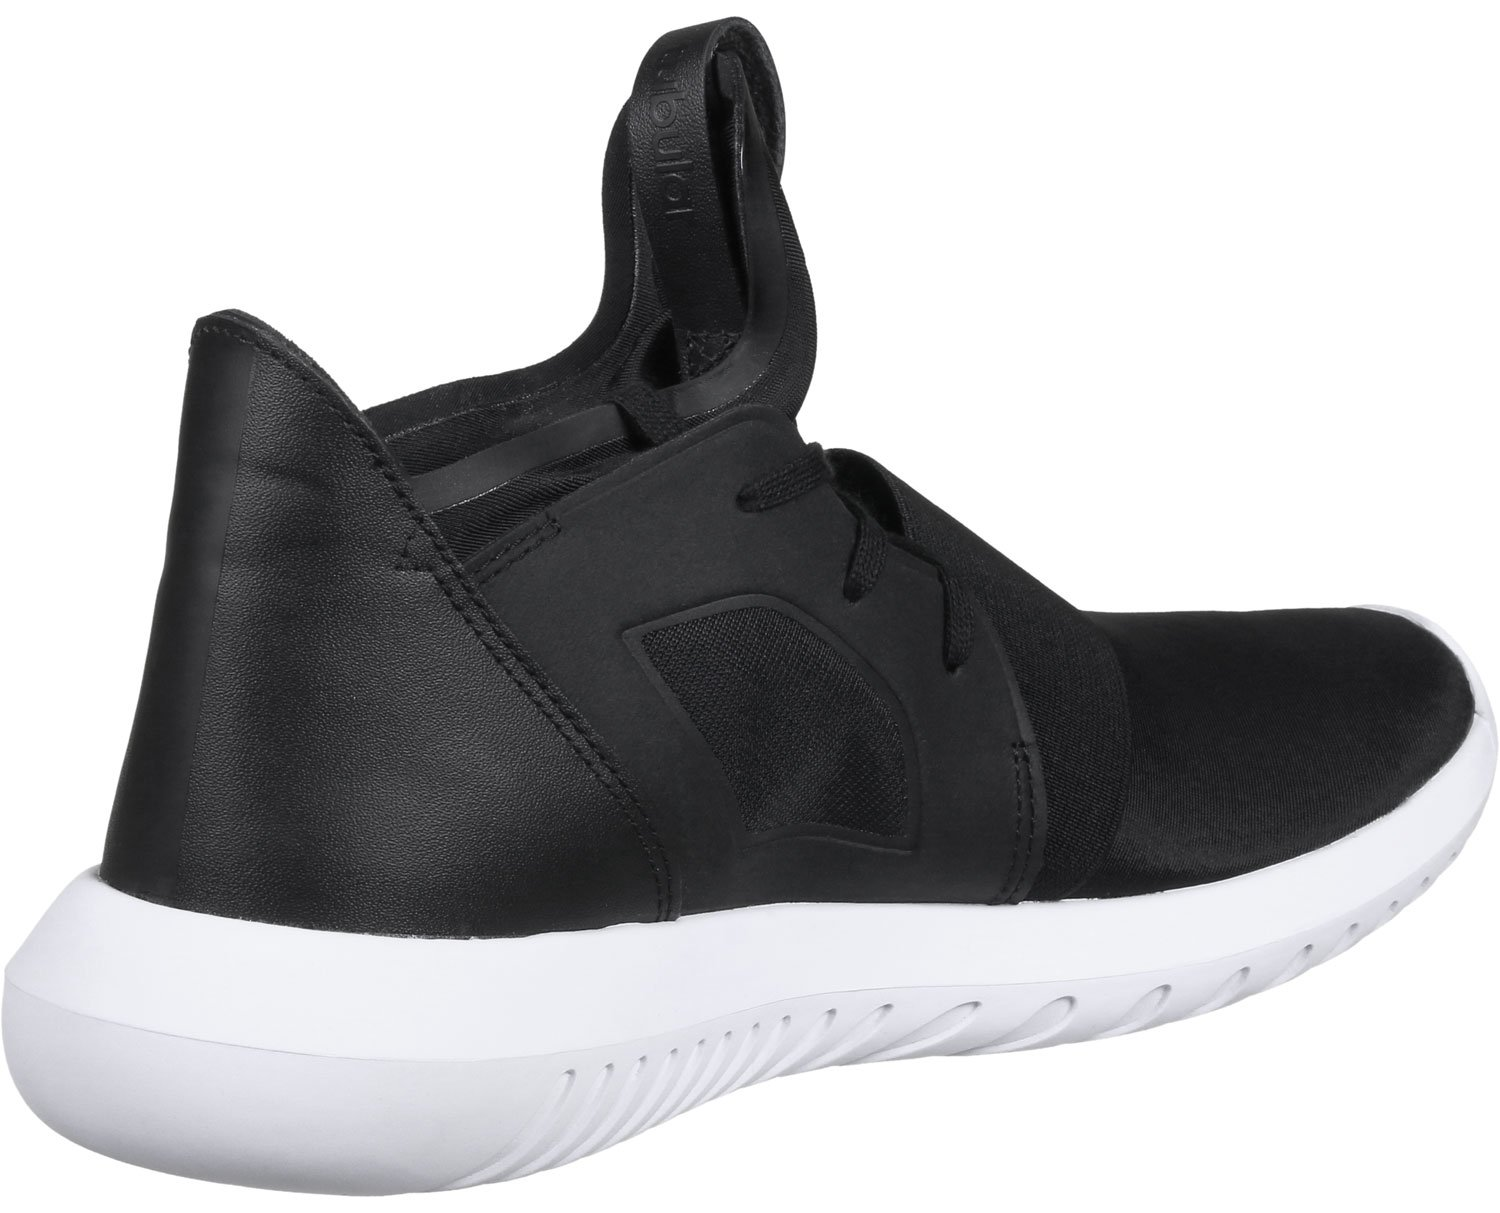 Amazon.com  adidas - Tubular Defiant W - S75249 - Color  Black - Size  8.5   Sports   Outdoors c32dd3bae8e9